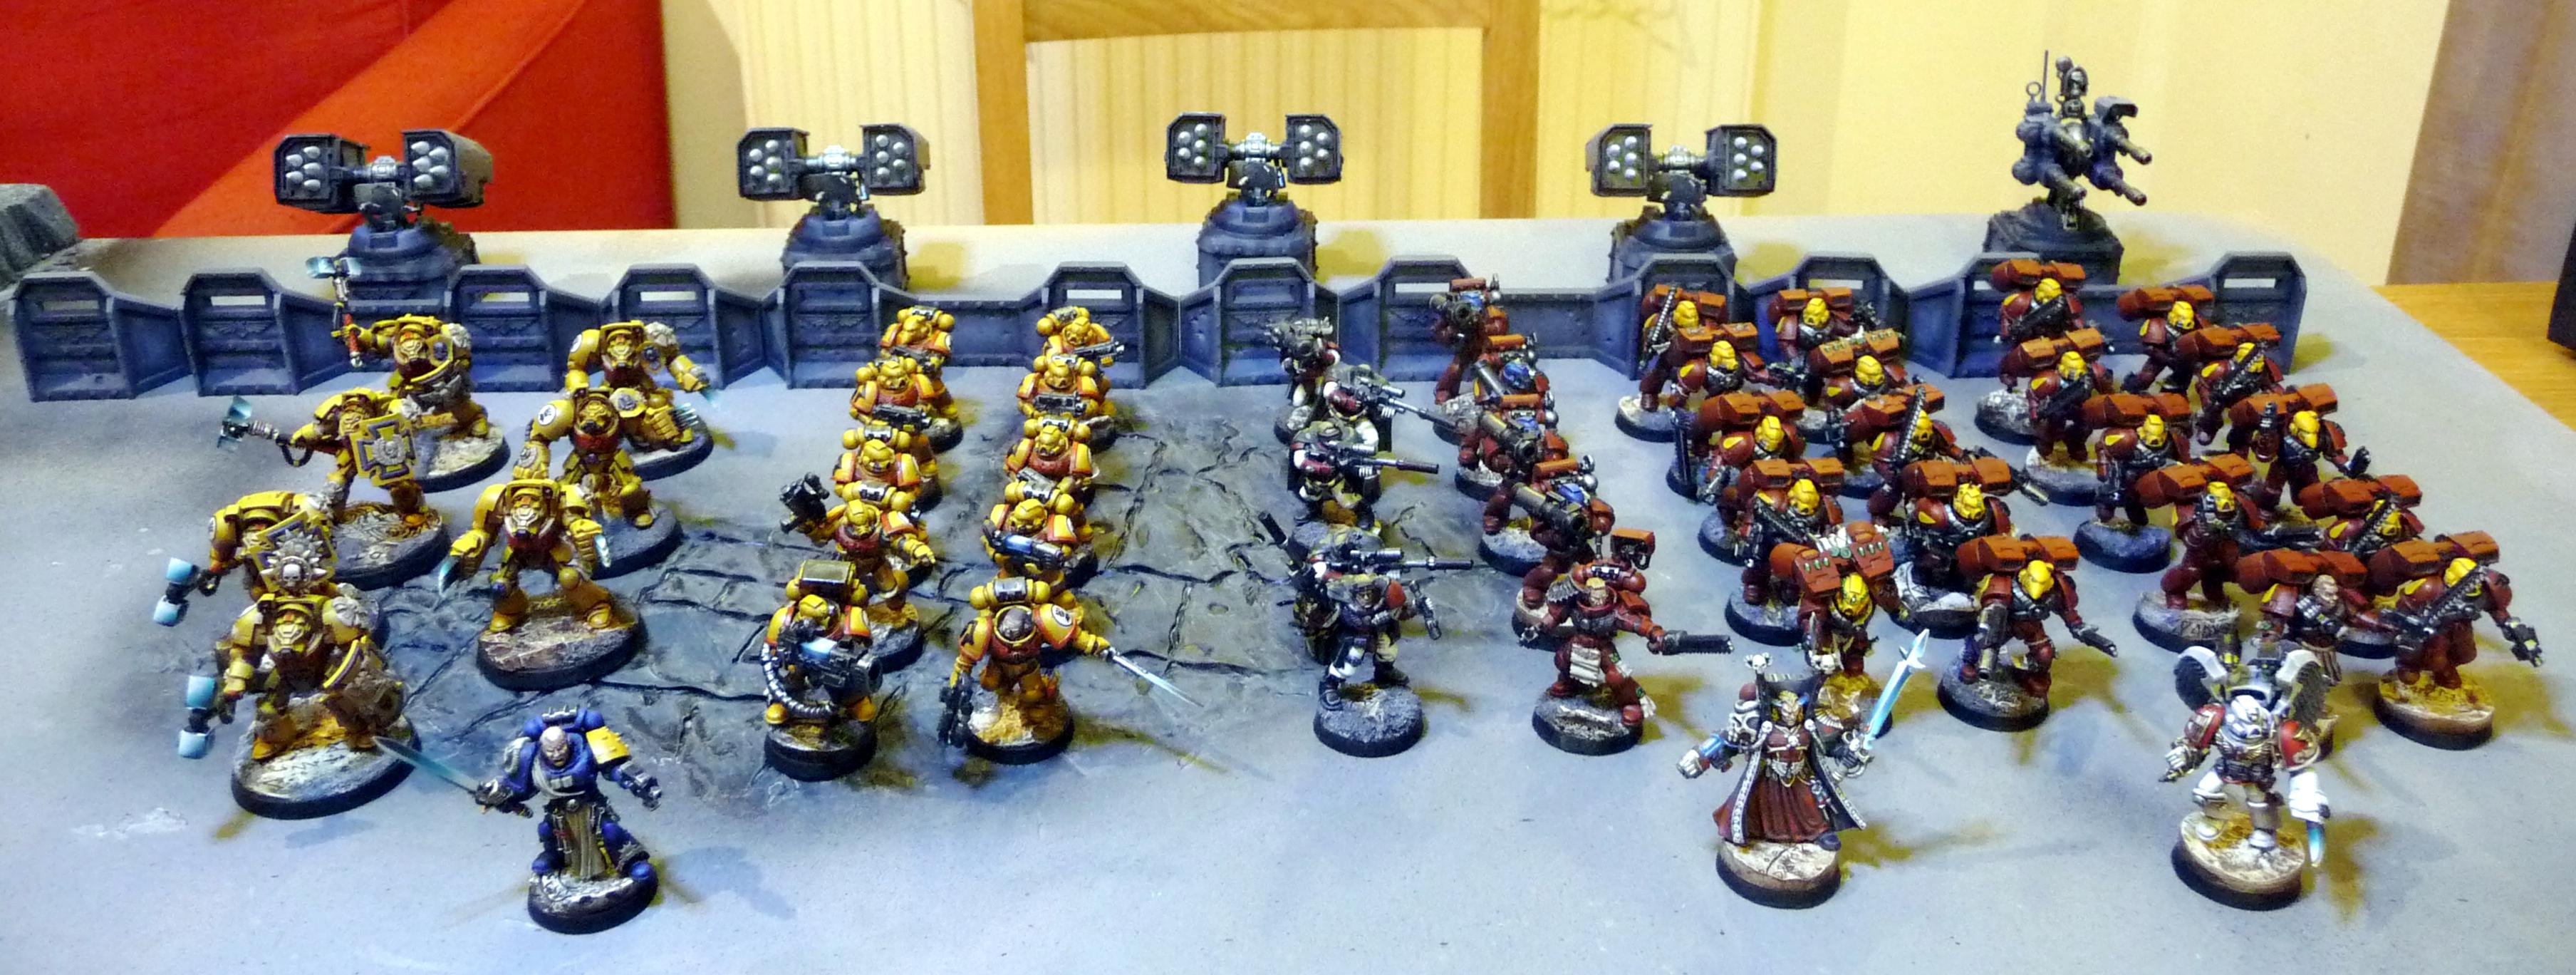 Army, Blood Angels, Imperial Fists